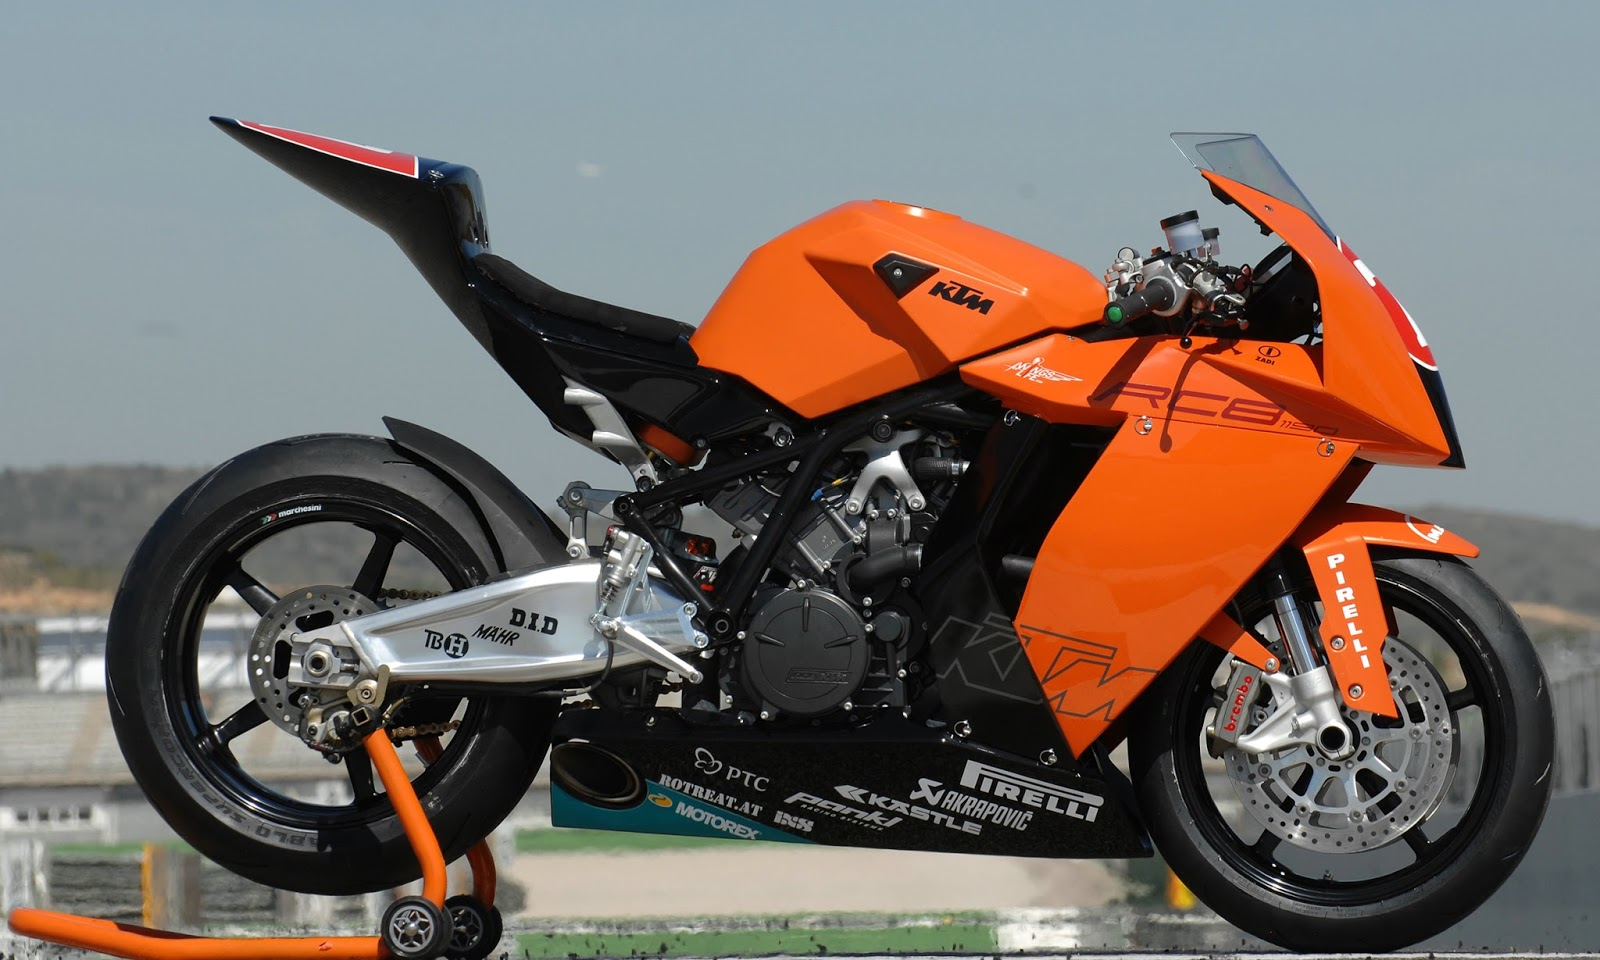 Ktm motorcycles hd wallpapers free wallaper downloads ktm sport - Ktm Rc8 Hd Wallpapers